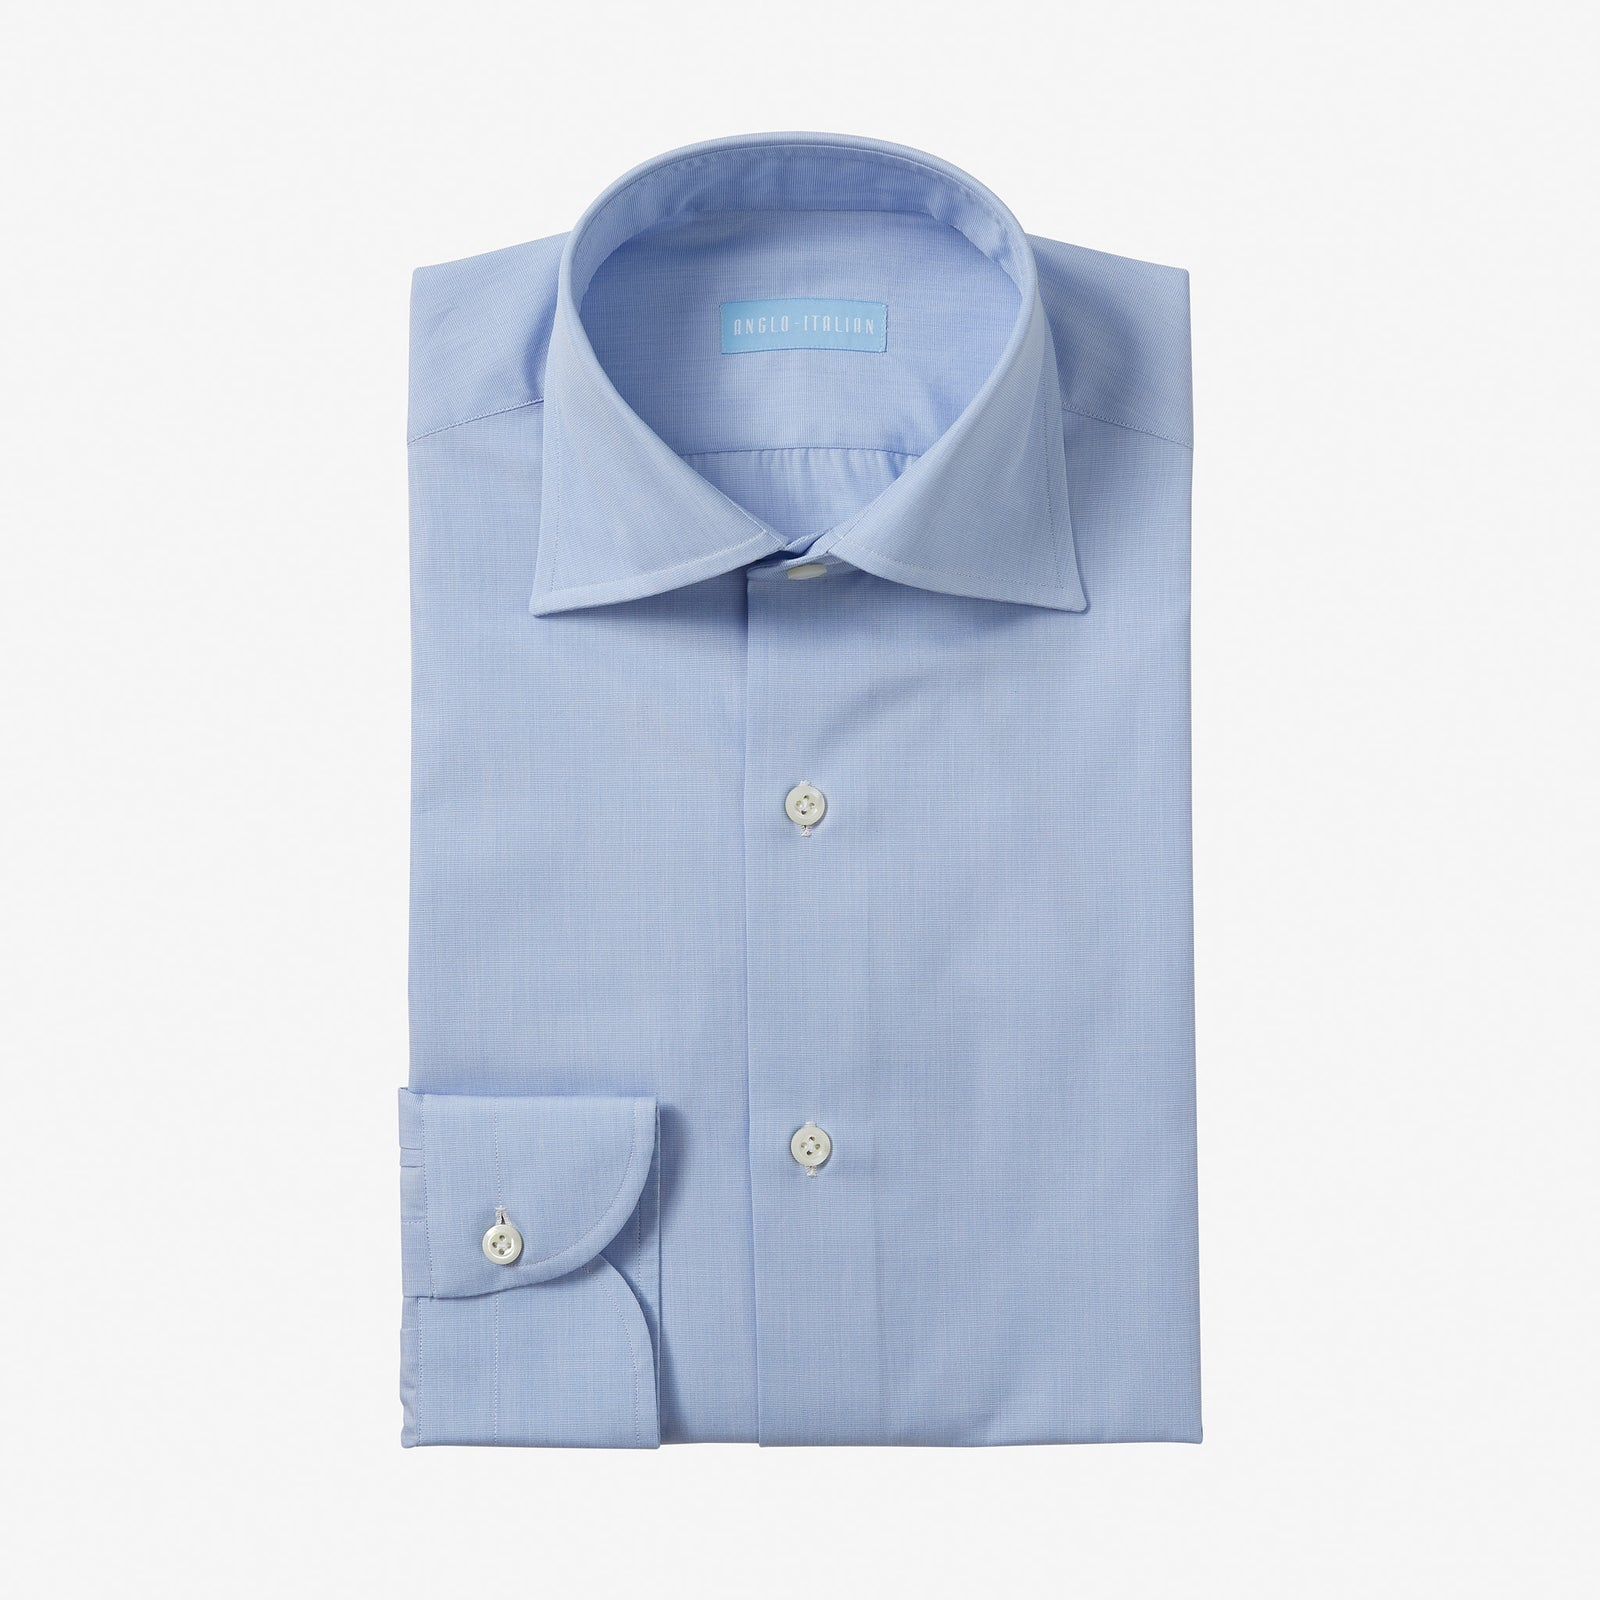 Spread Collar Shirt Cotton Blue End On End